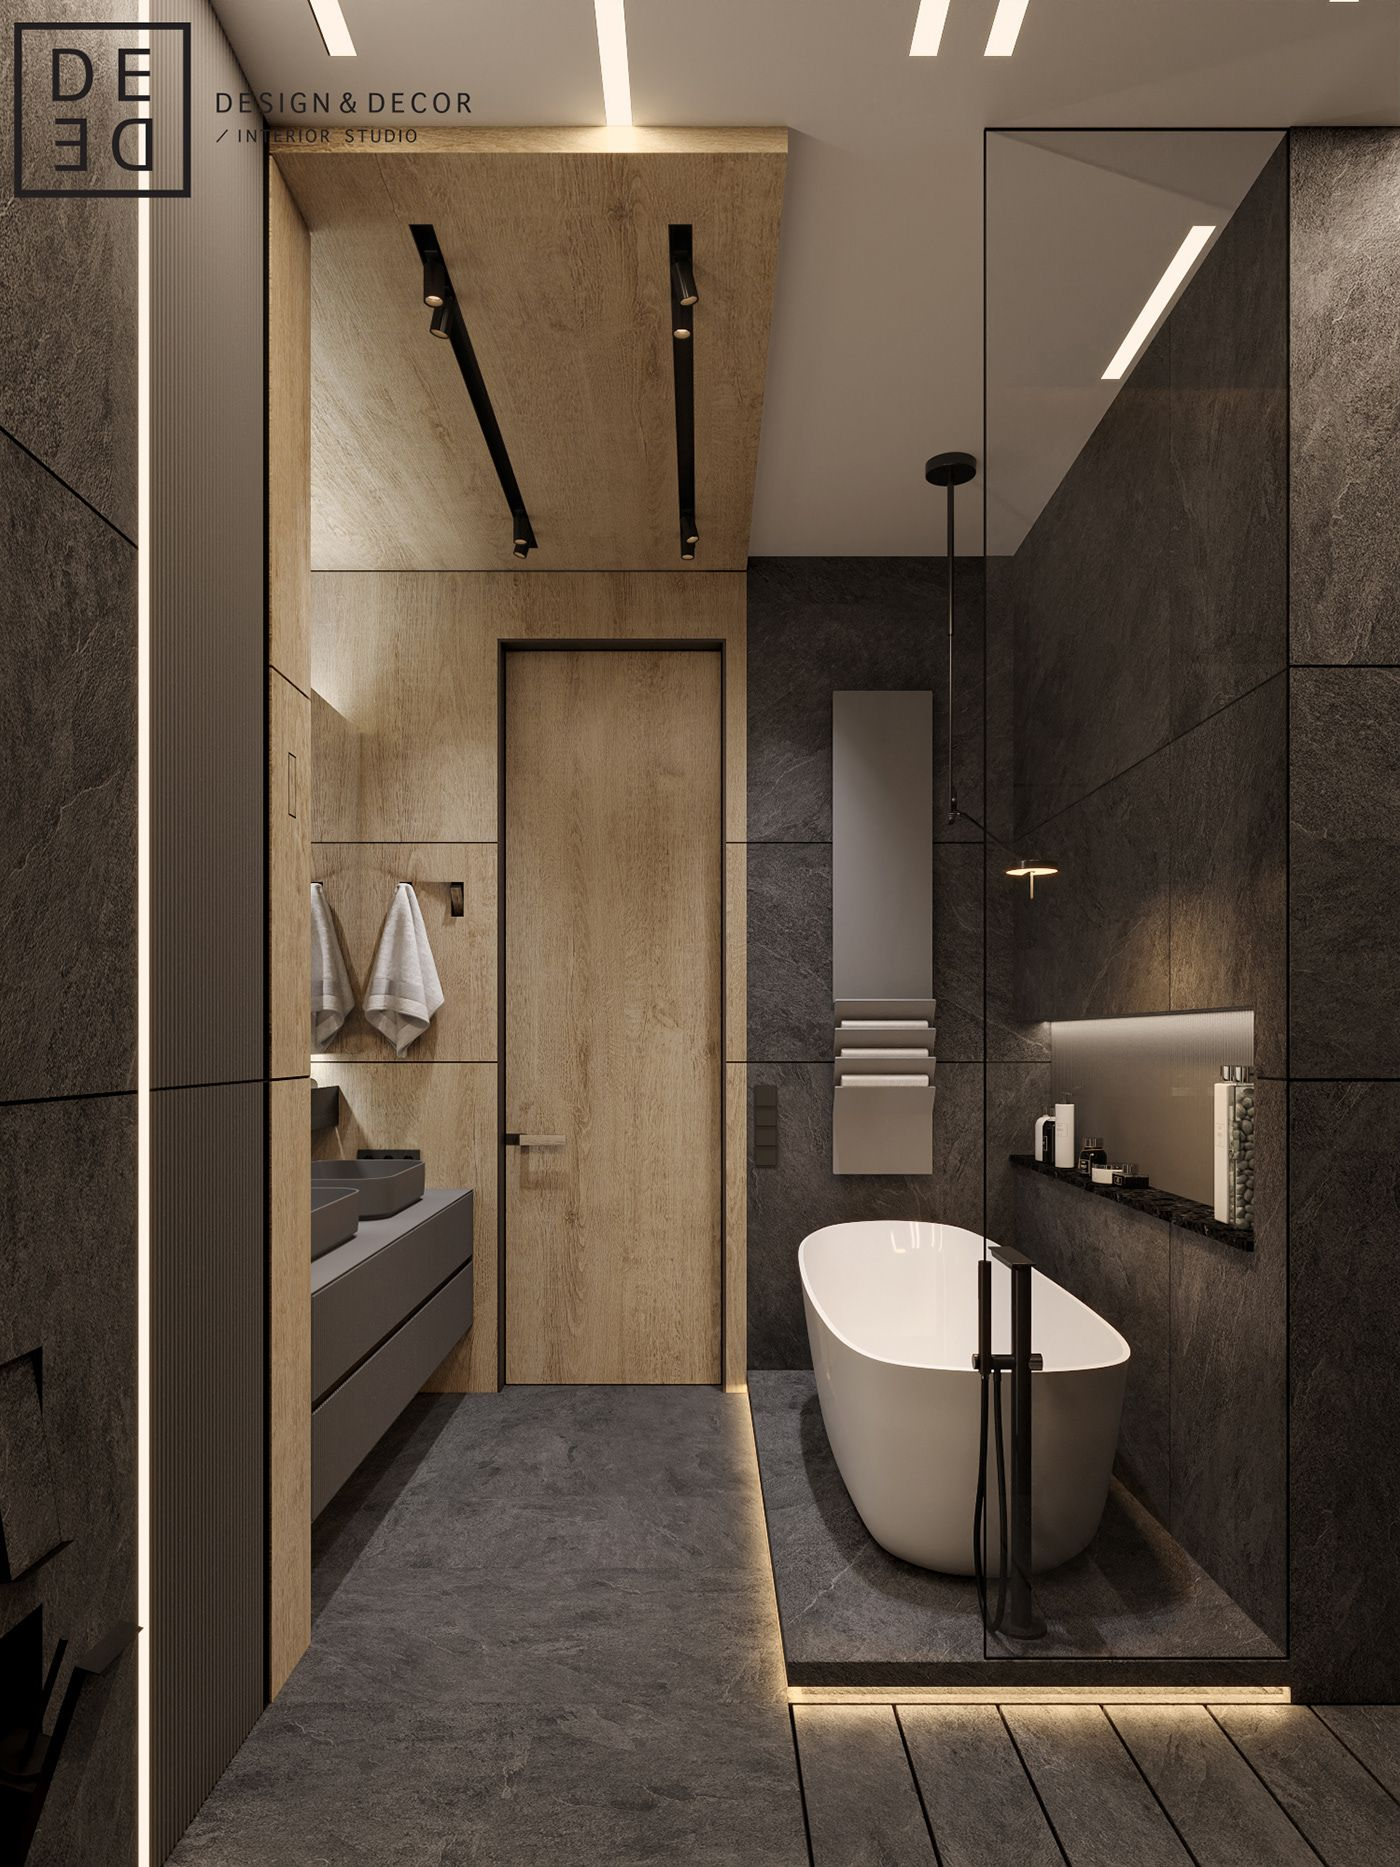 De De Georgeous Minimalism With Wooden Accents On Behance Banyo